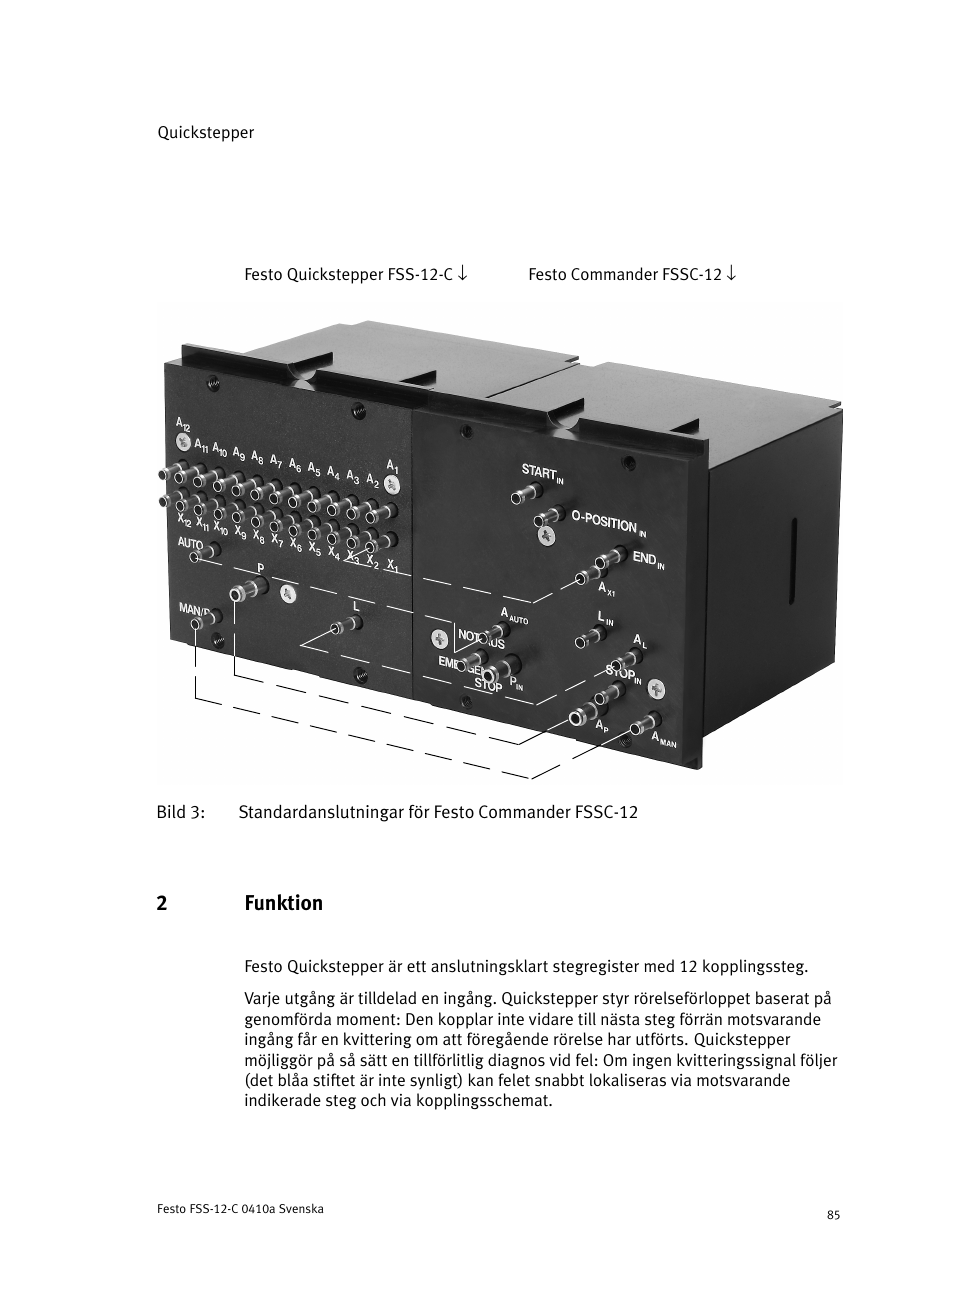 2 funktion, 2funktion | Festo Quickstepper FSS User Manual | Page 85 / 100